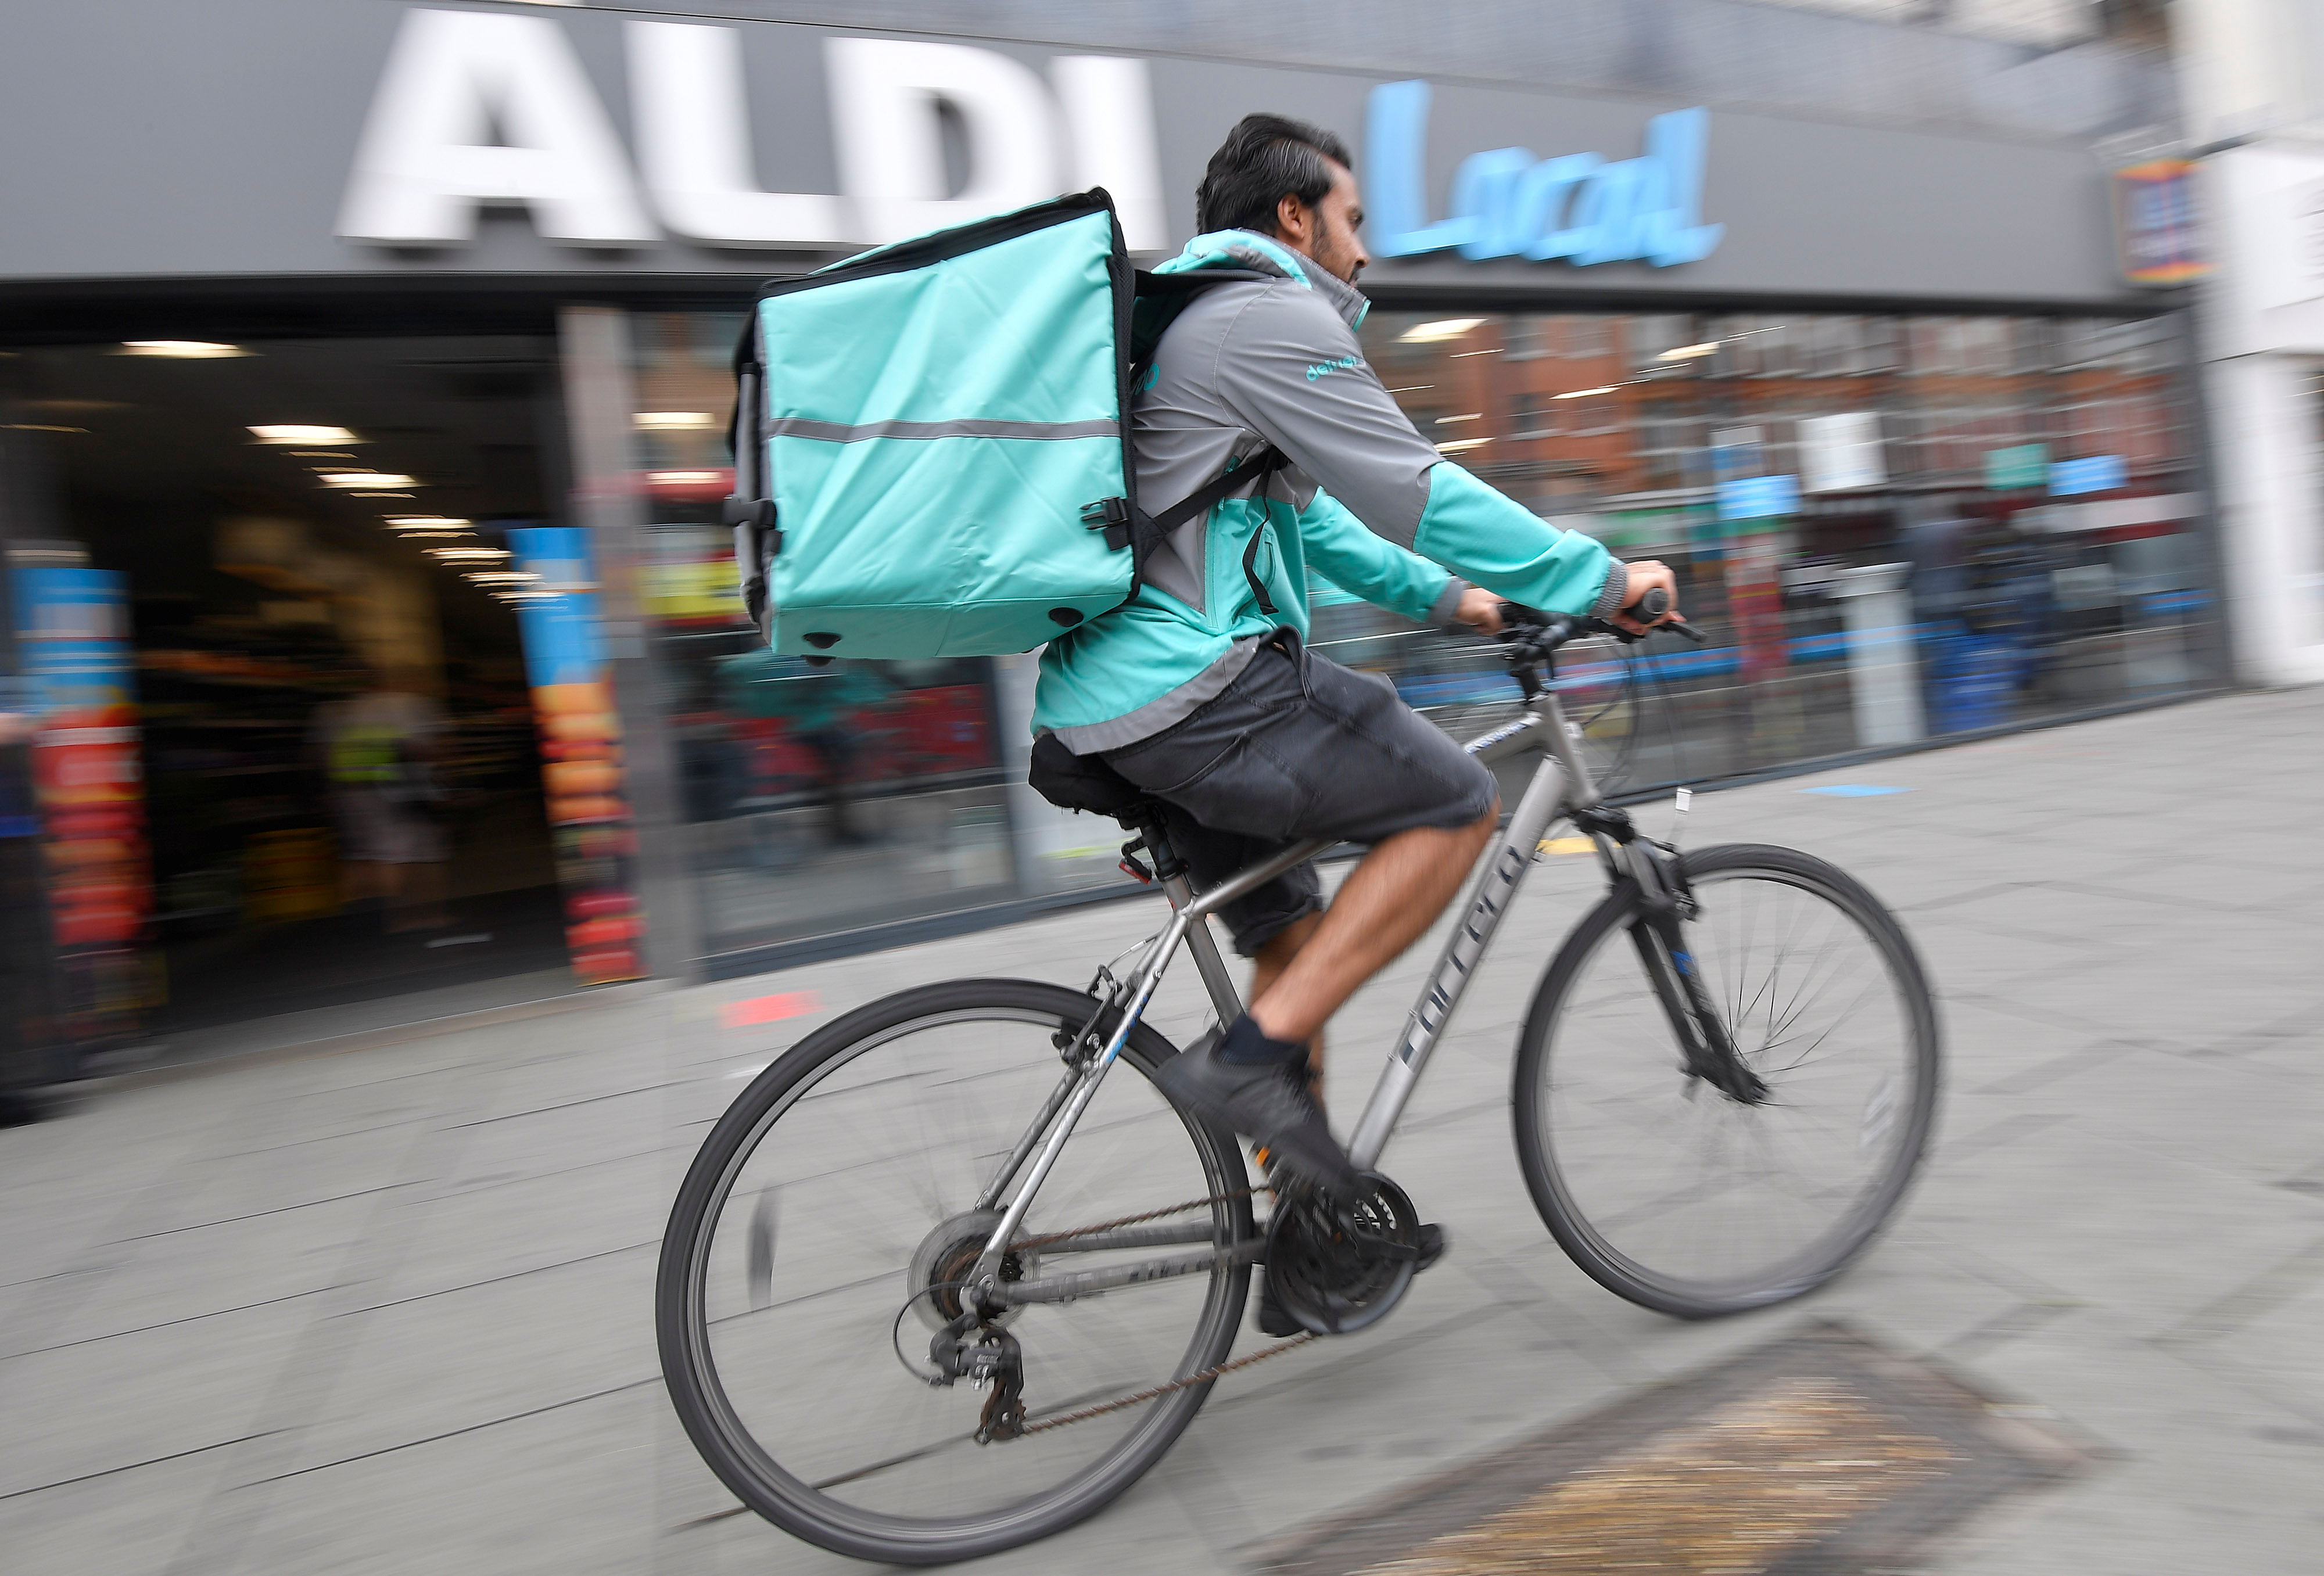 Abdelaziz Abdou, a Deliveroo delivery rider, poses with a bag of Aldi groceries, as discount supermarket chains Aldi and Lidl look poised to accelerate their push into home delivery to satisfy burgeoning demand for online grocery shopping in a shift expected to endure beyond the coronavirus crisis, in London, Britain, June 17, 2020. Picture taken June 17, 2020. REUTERS/Toby Melville